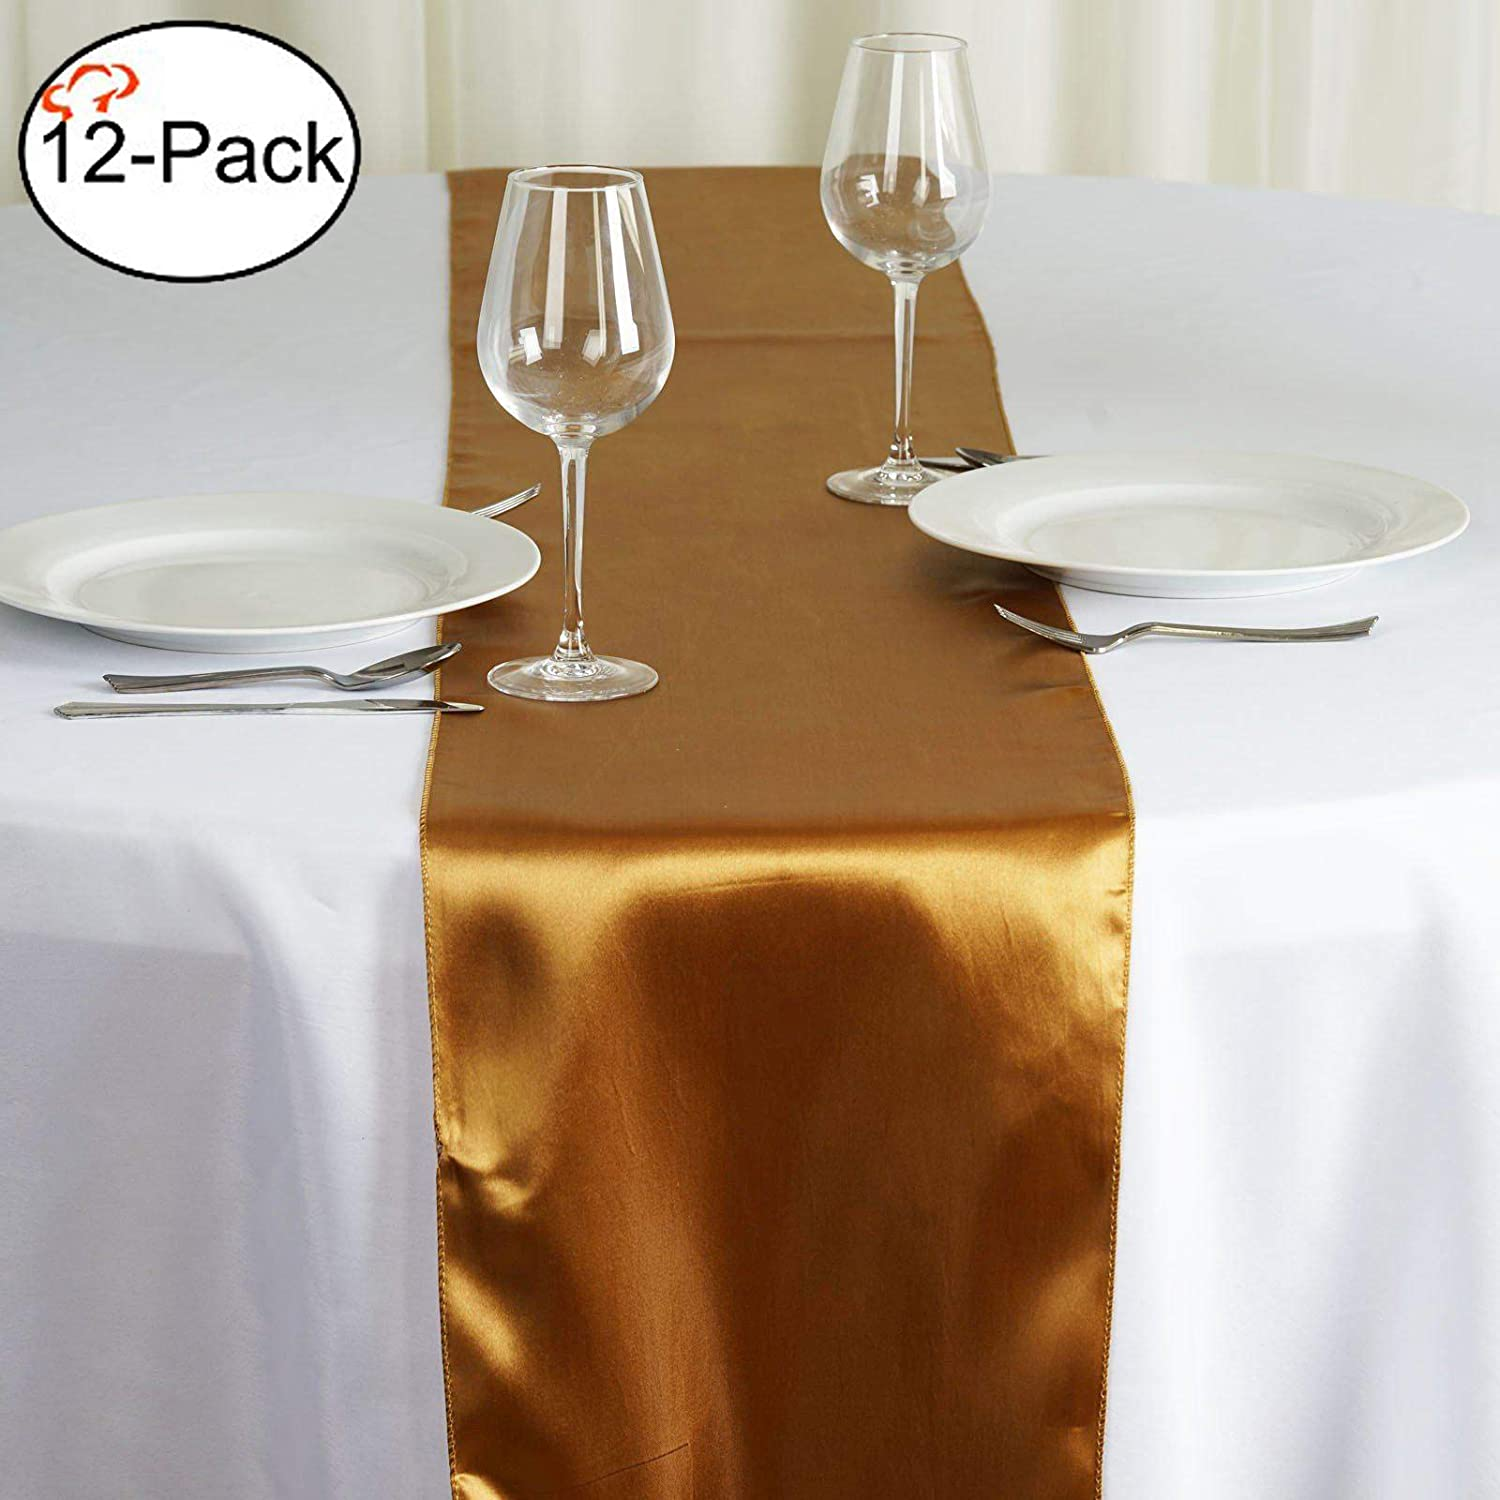 Tiger Chef 12-Pack Deep Gold 12 x 108 inches Long Satin Table Runner for Wedding, Table Runners fit Rectange and Round Table Decorations for Birthday Parties, Banquets, Graduations, Engagements